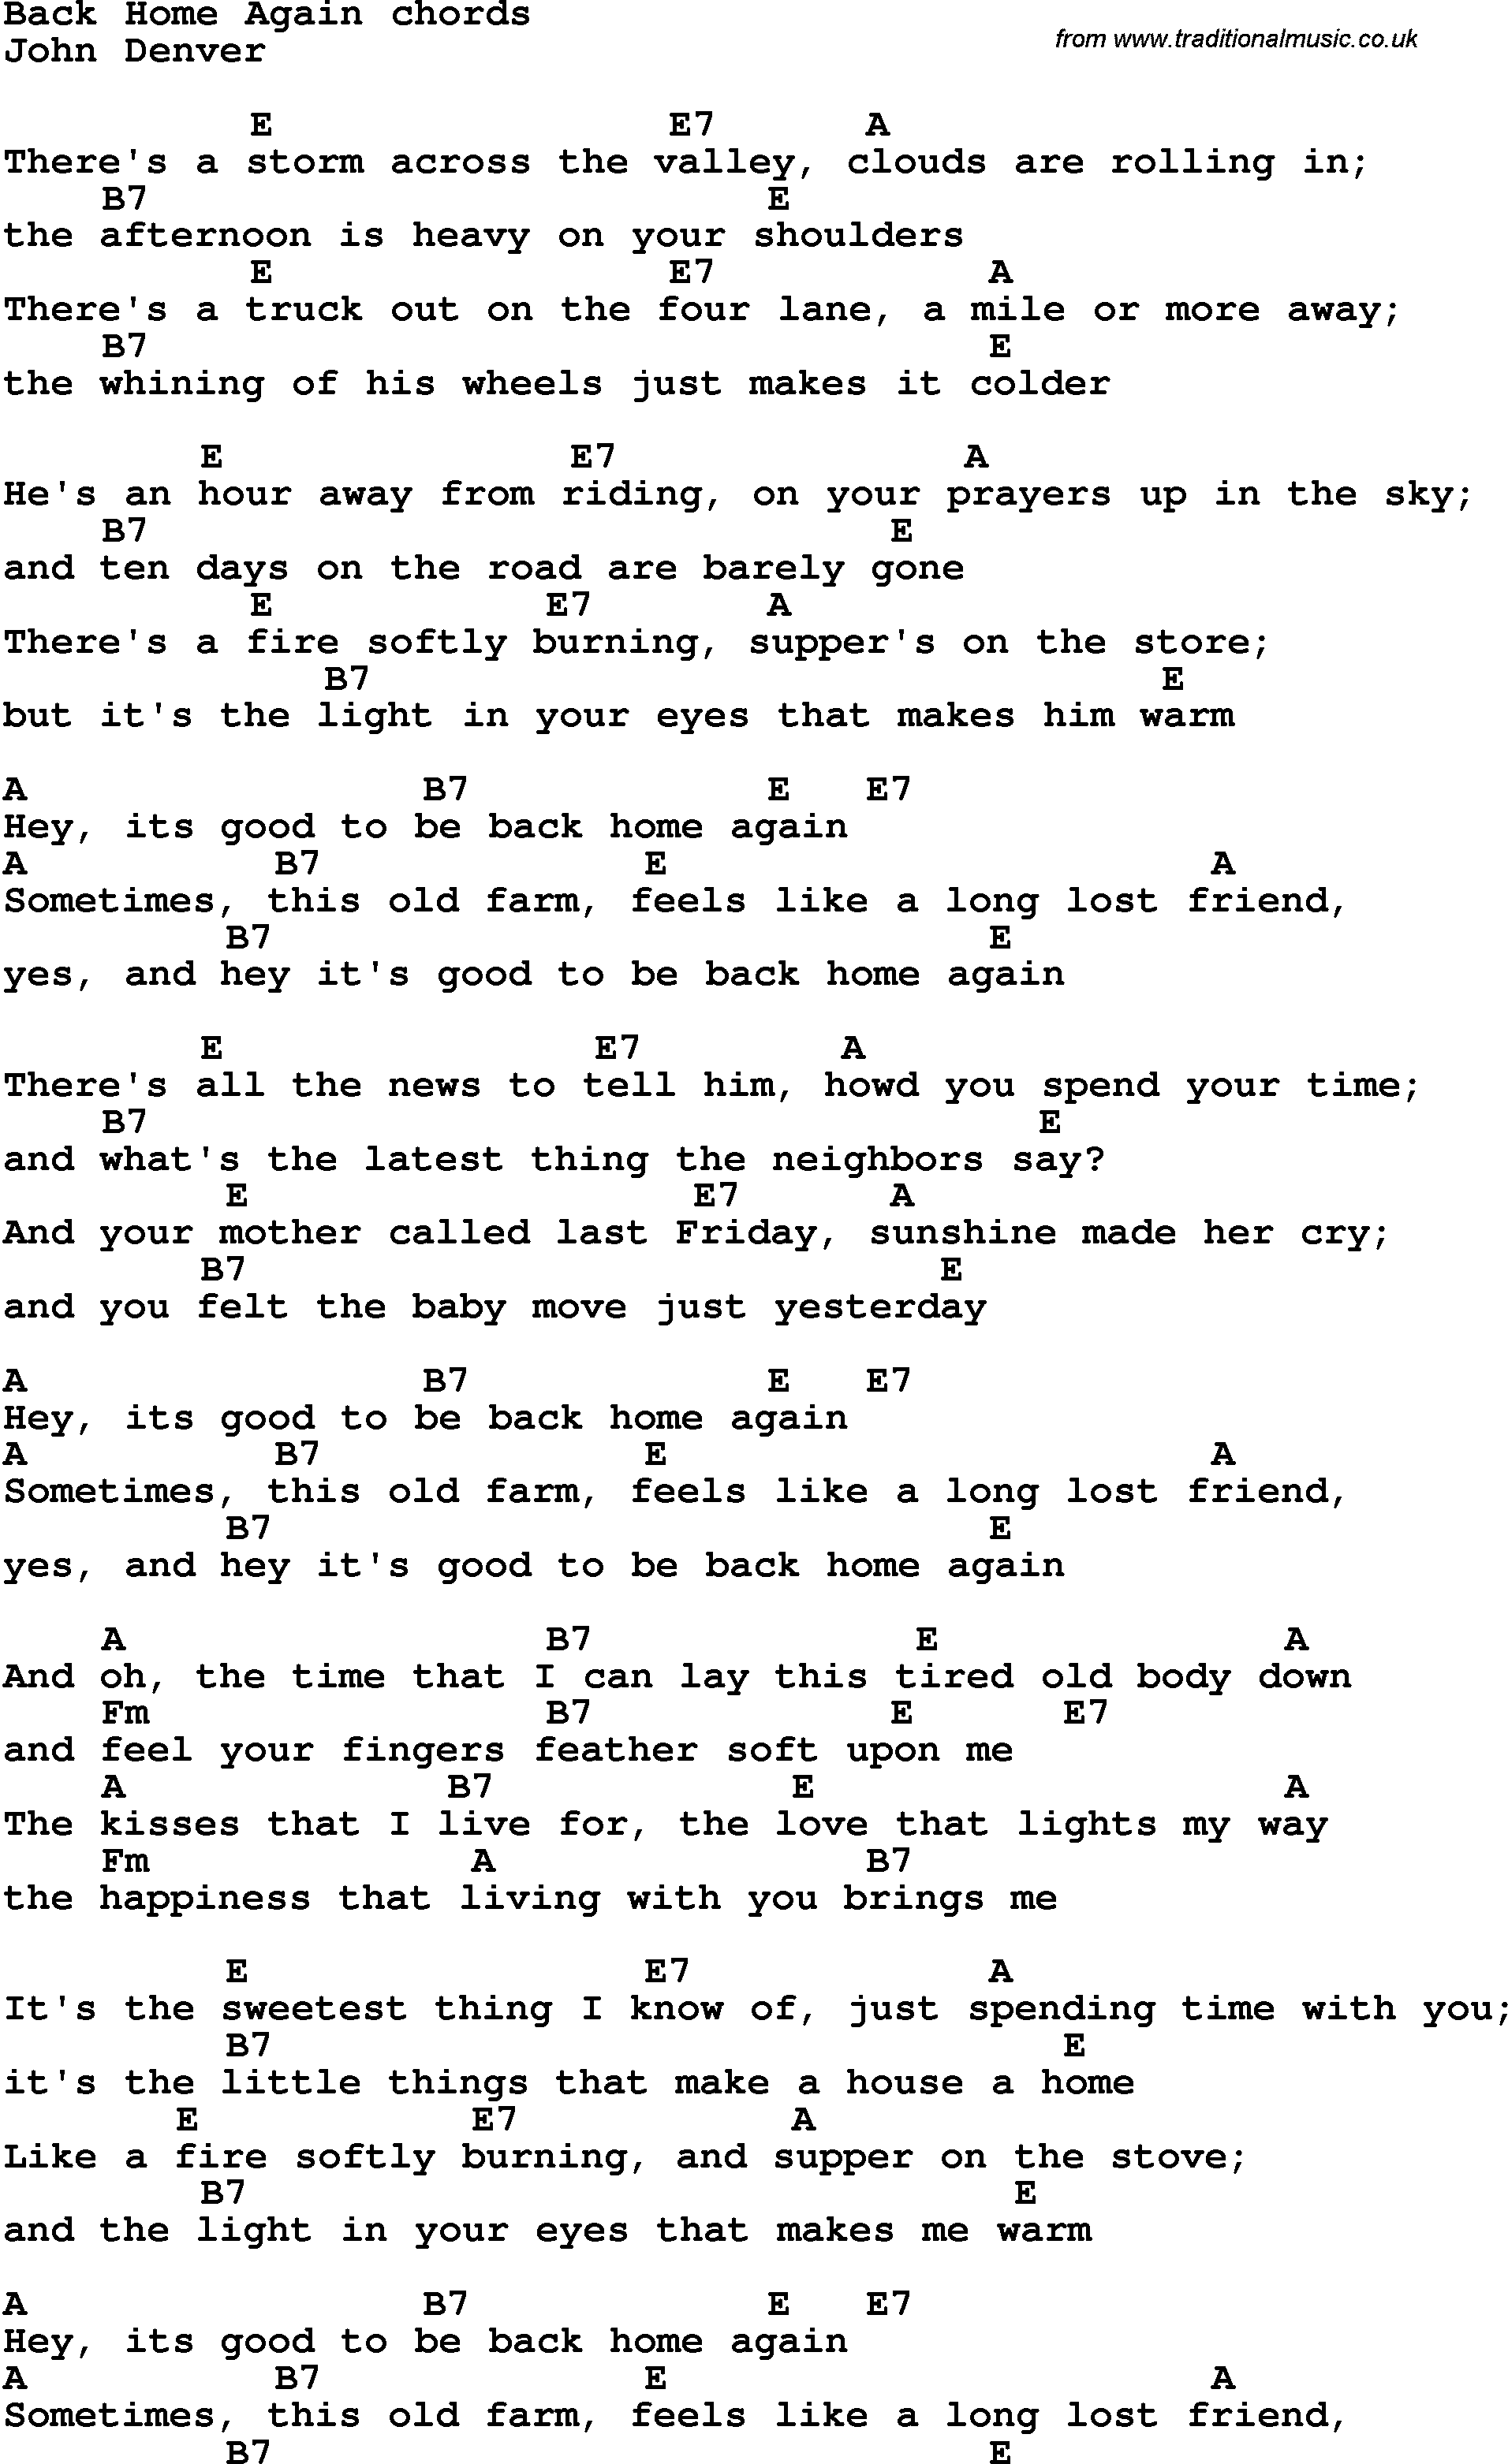 Song lyrics with guitar chords for back home again song lyrics with guitar chords for back home again hexwebz Gallery